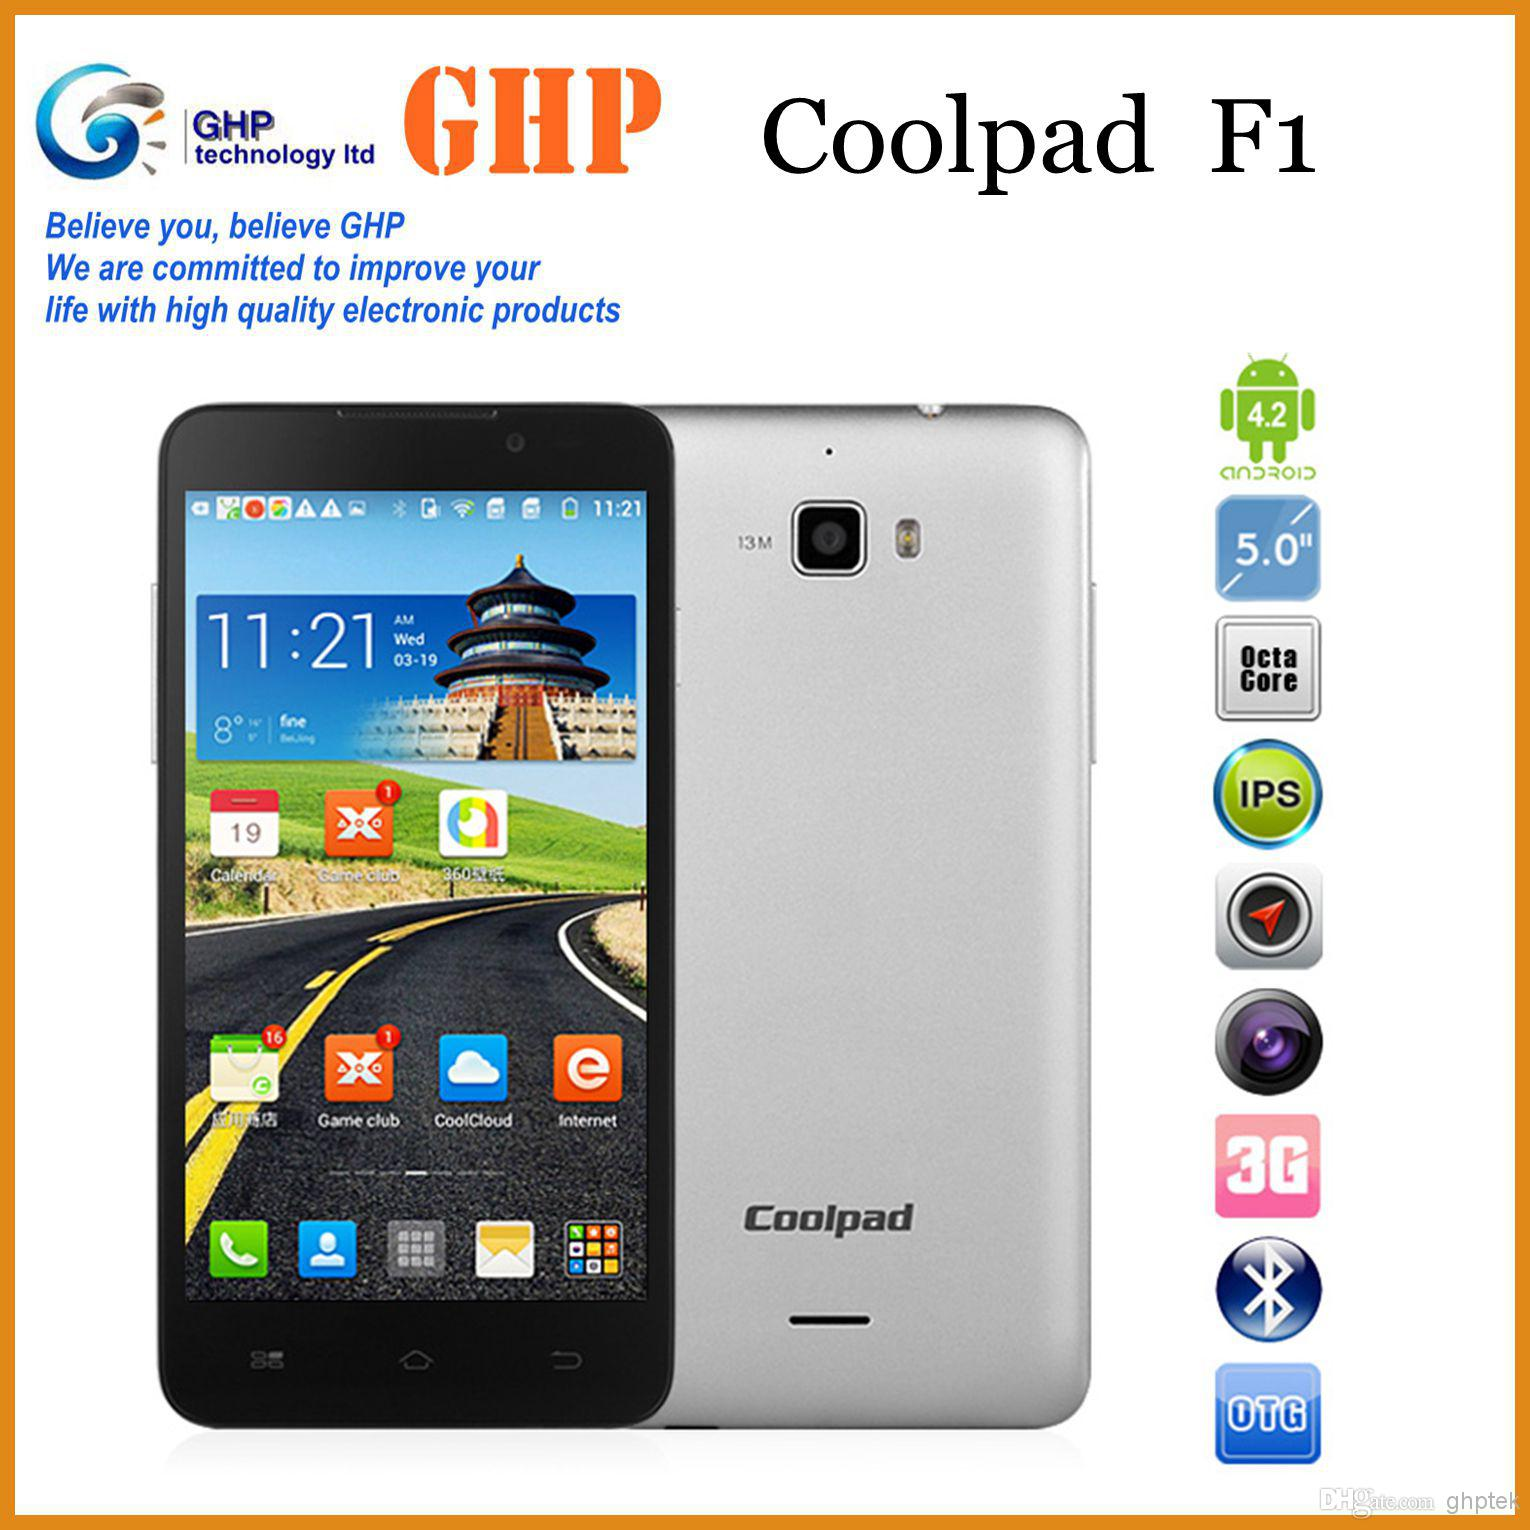 How To Flashing coolpad f1 8297w | How To Flashing Smartphone